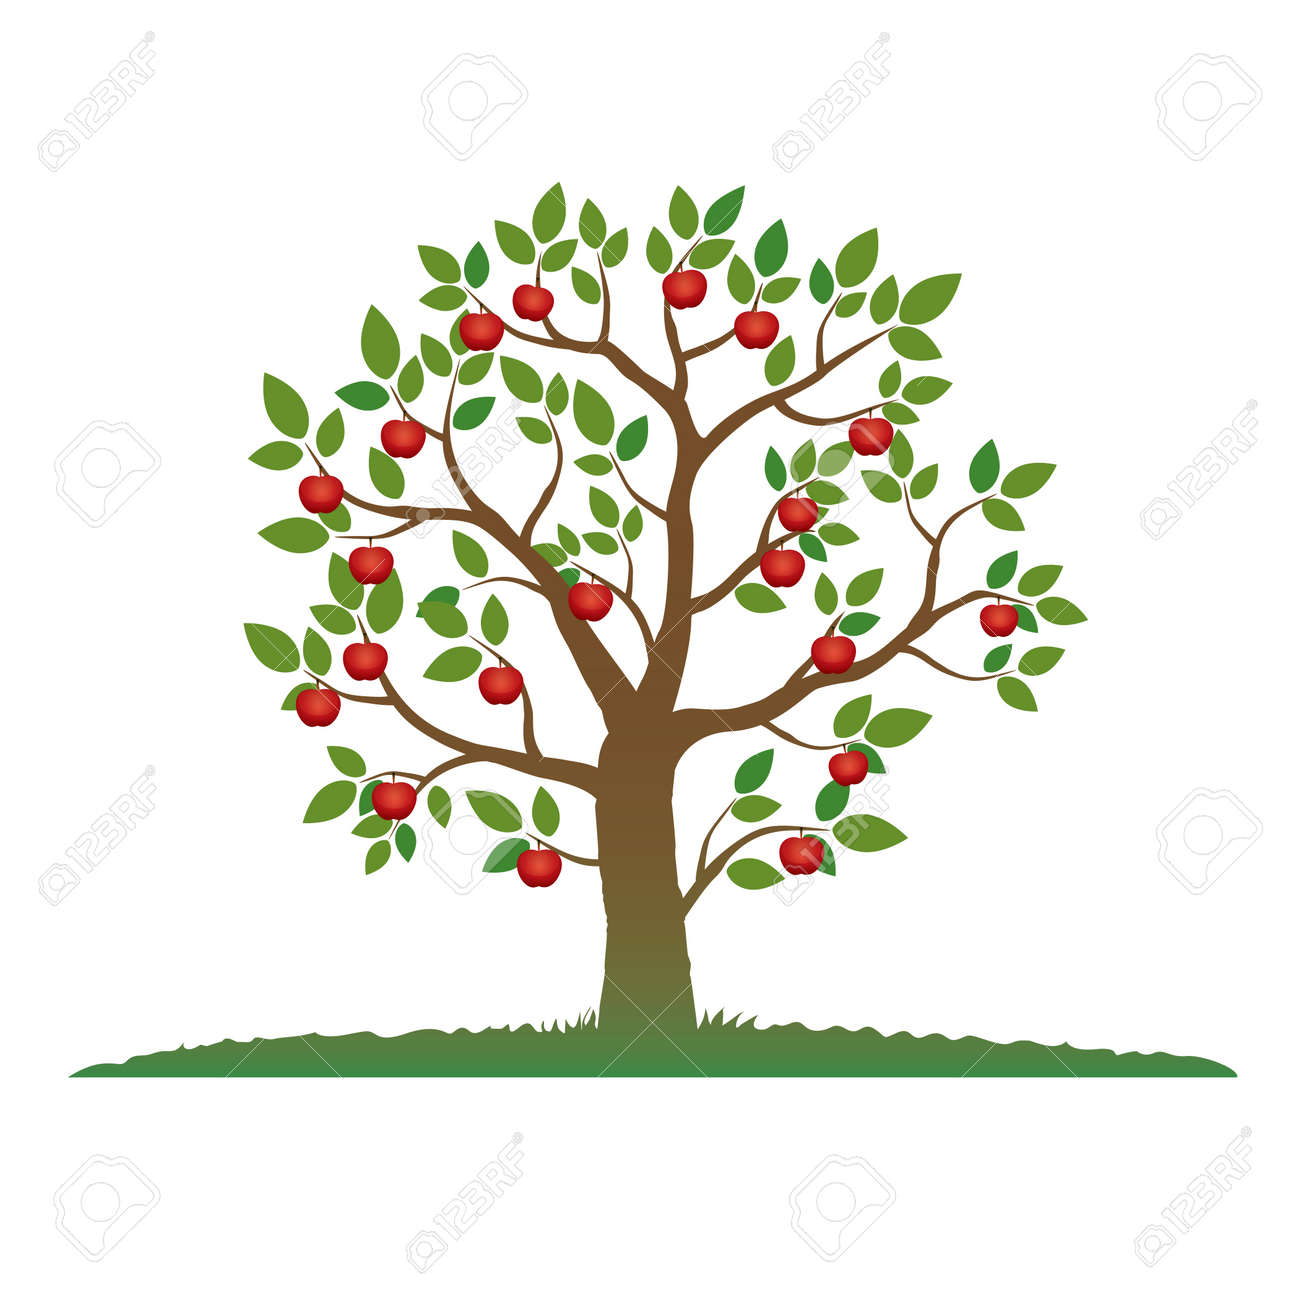 Color Tree And Red Apples Royalty Free Cliparts, Vectors, And Stock ...